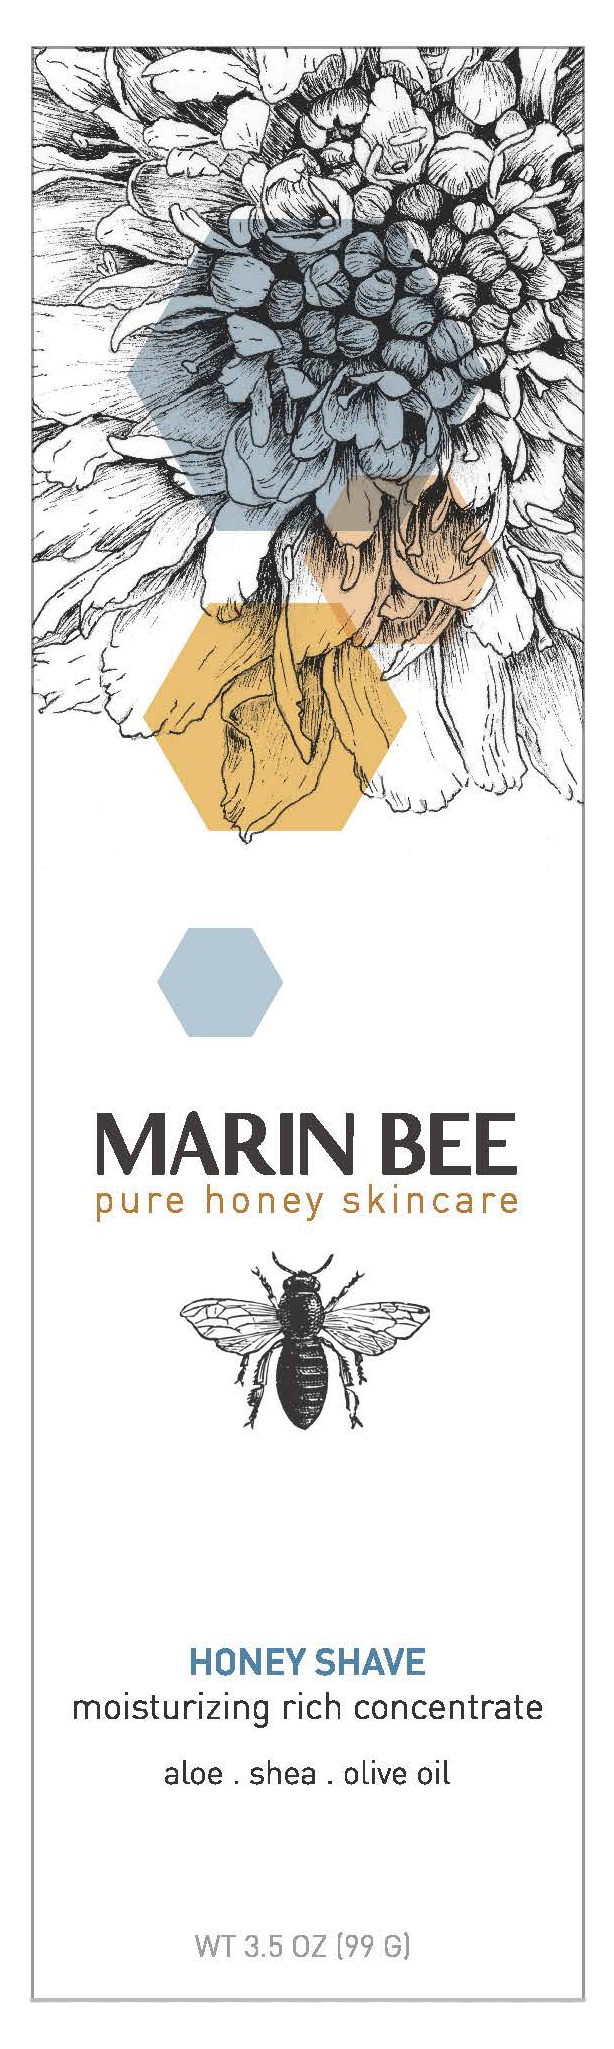 Marin Bee Honey Shave